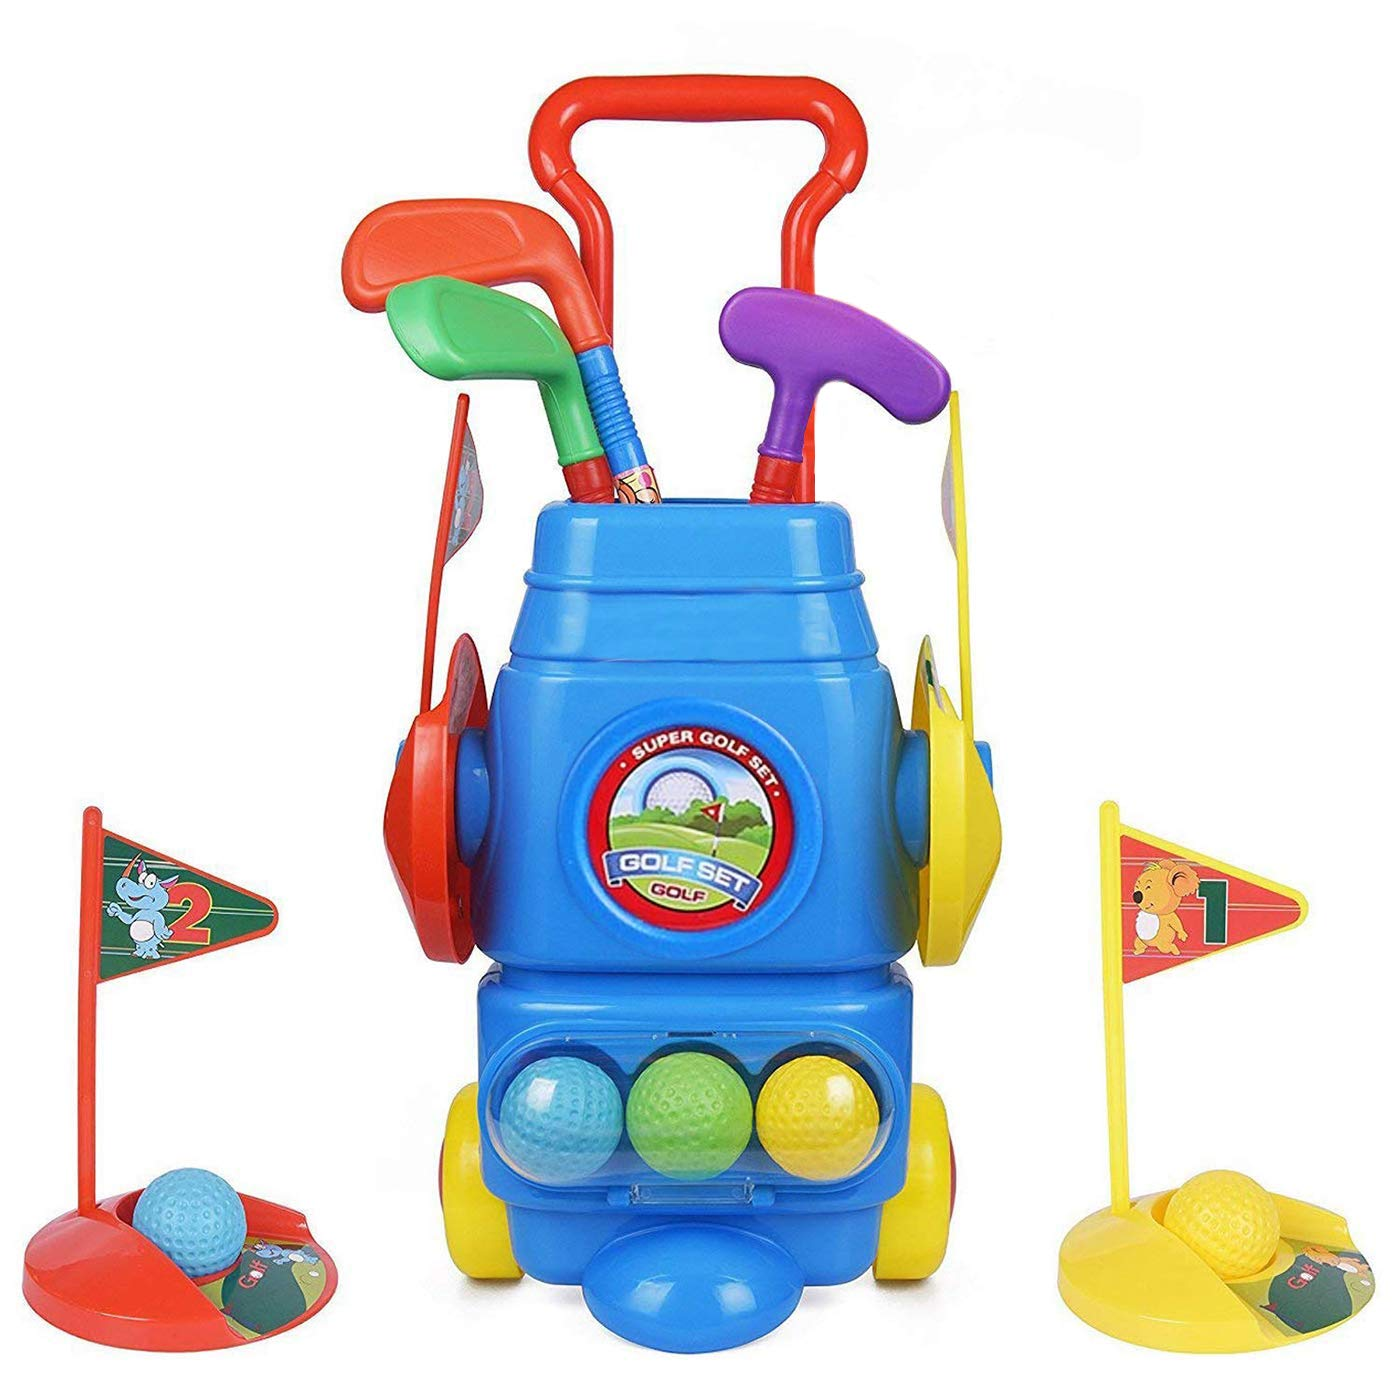 ToyVelt Kids Golf Club Set - Golf CartWith Wheels, 3 Colorful Golf Sticks, 3 Balls & 2 Practice Holes - Fun Young Golfer Sports Toy Kit for Boys &Girls - Promotes Physical & Mental Development by ToyVelt